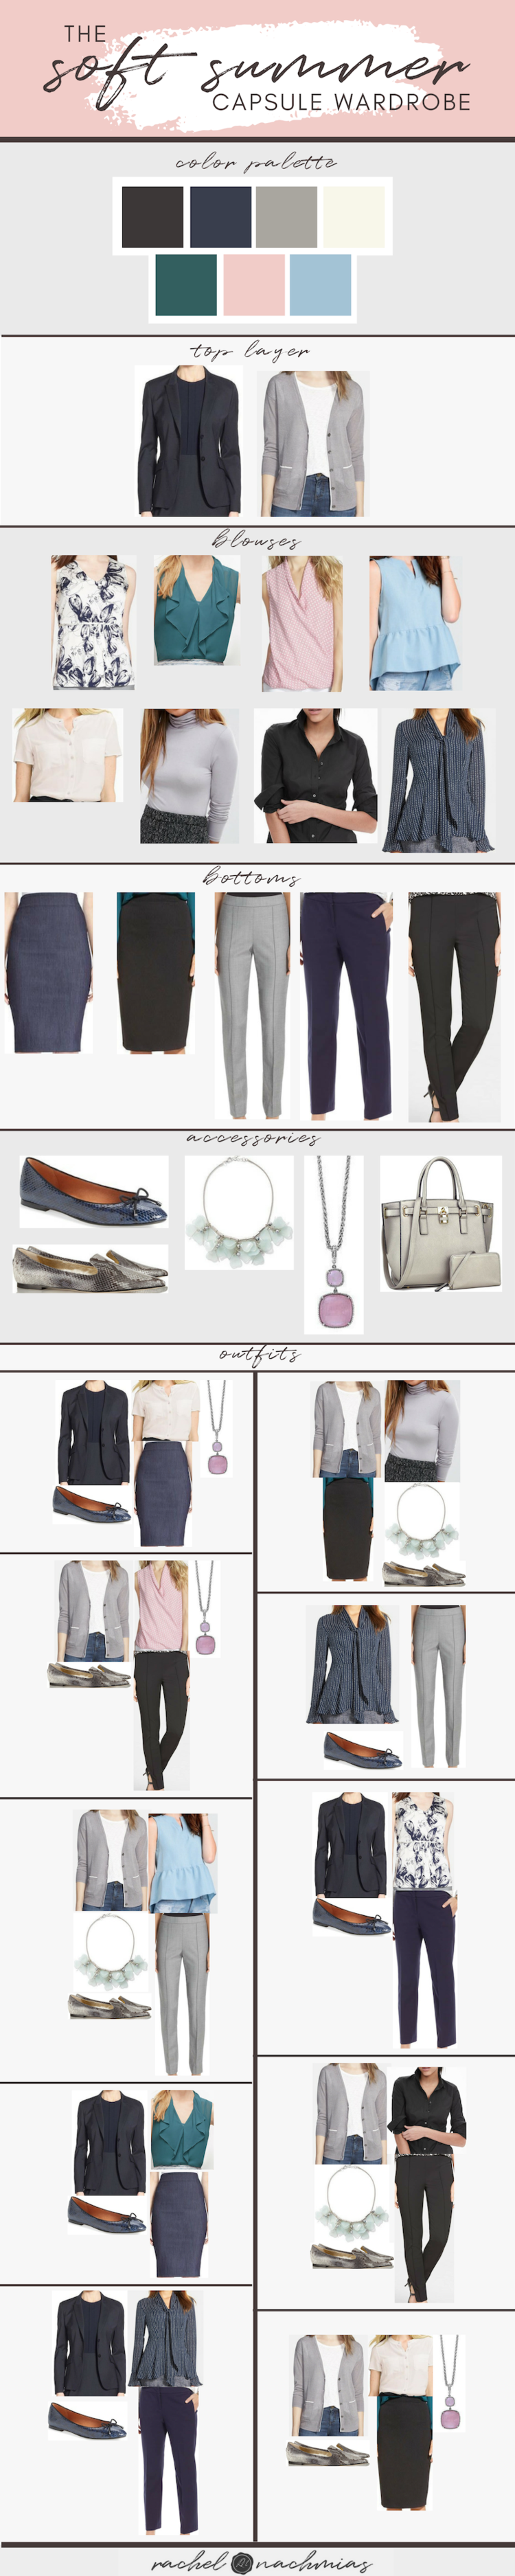 A concept for a Professional Capsule Wardrobe in Soft Summer colors. More info in